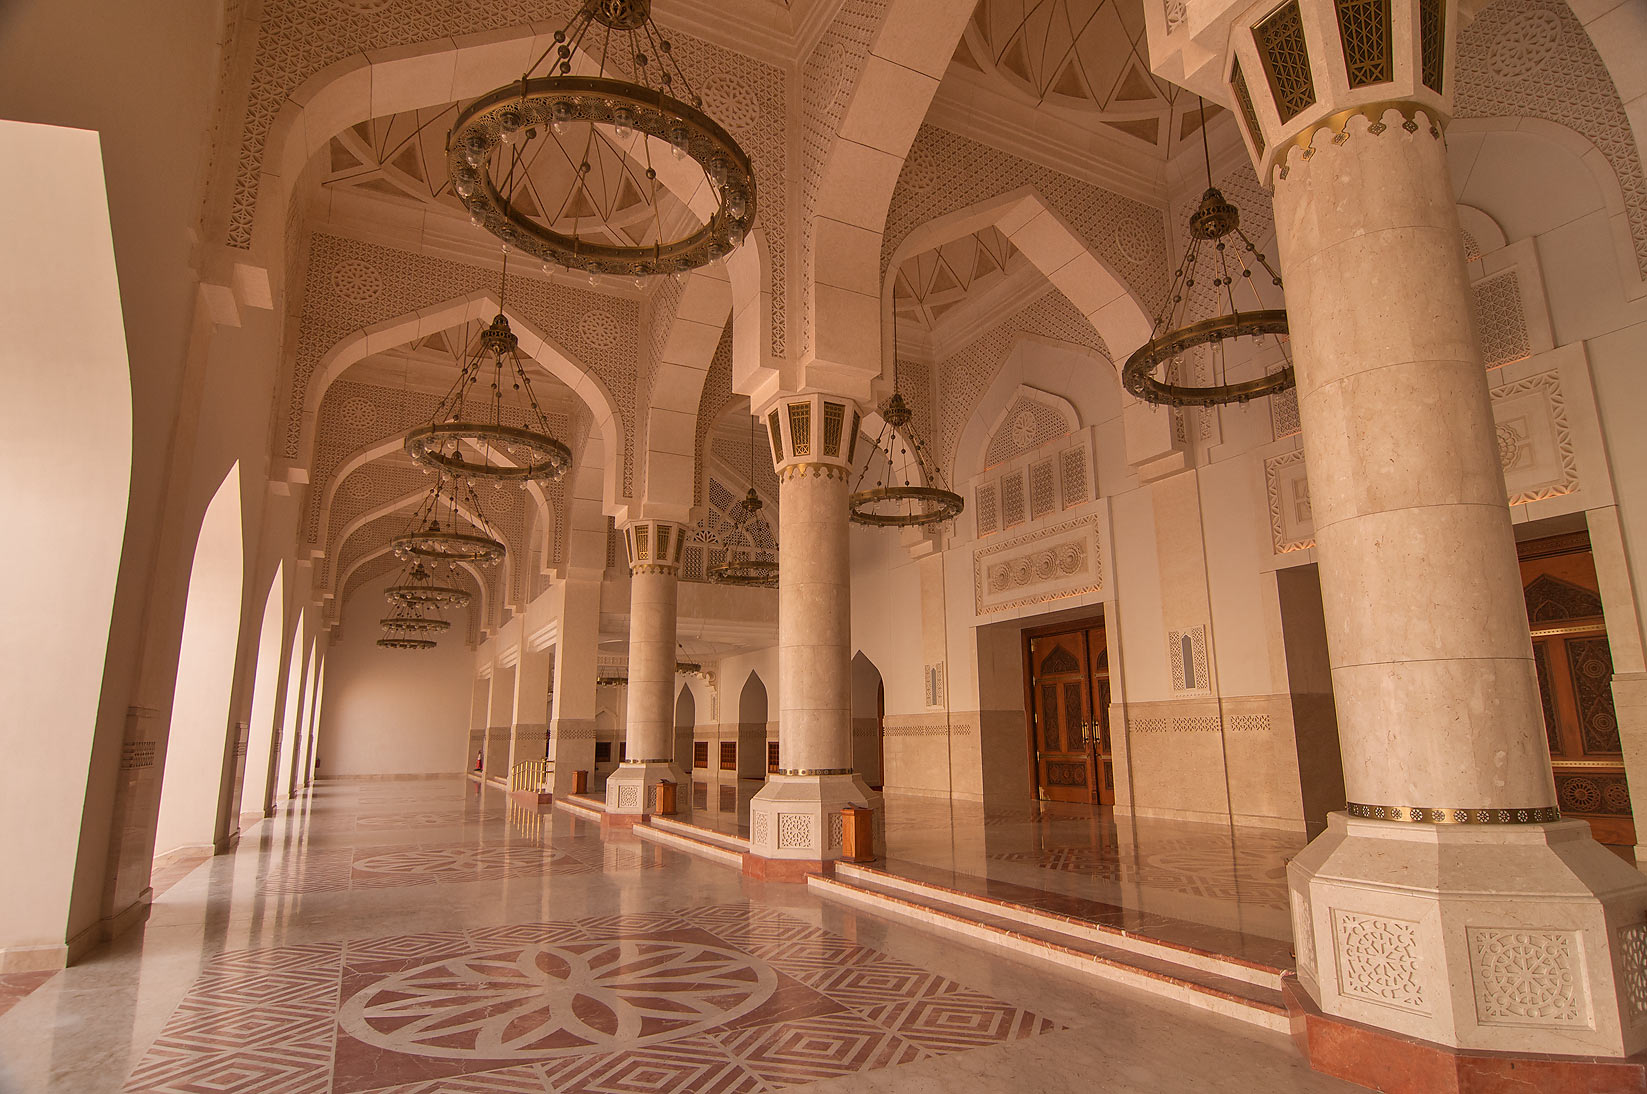 Succession of arches (arcade or riwaq) of State...Ibn Abdul Wahhab Mosque). Doha, Qatar